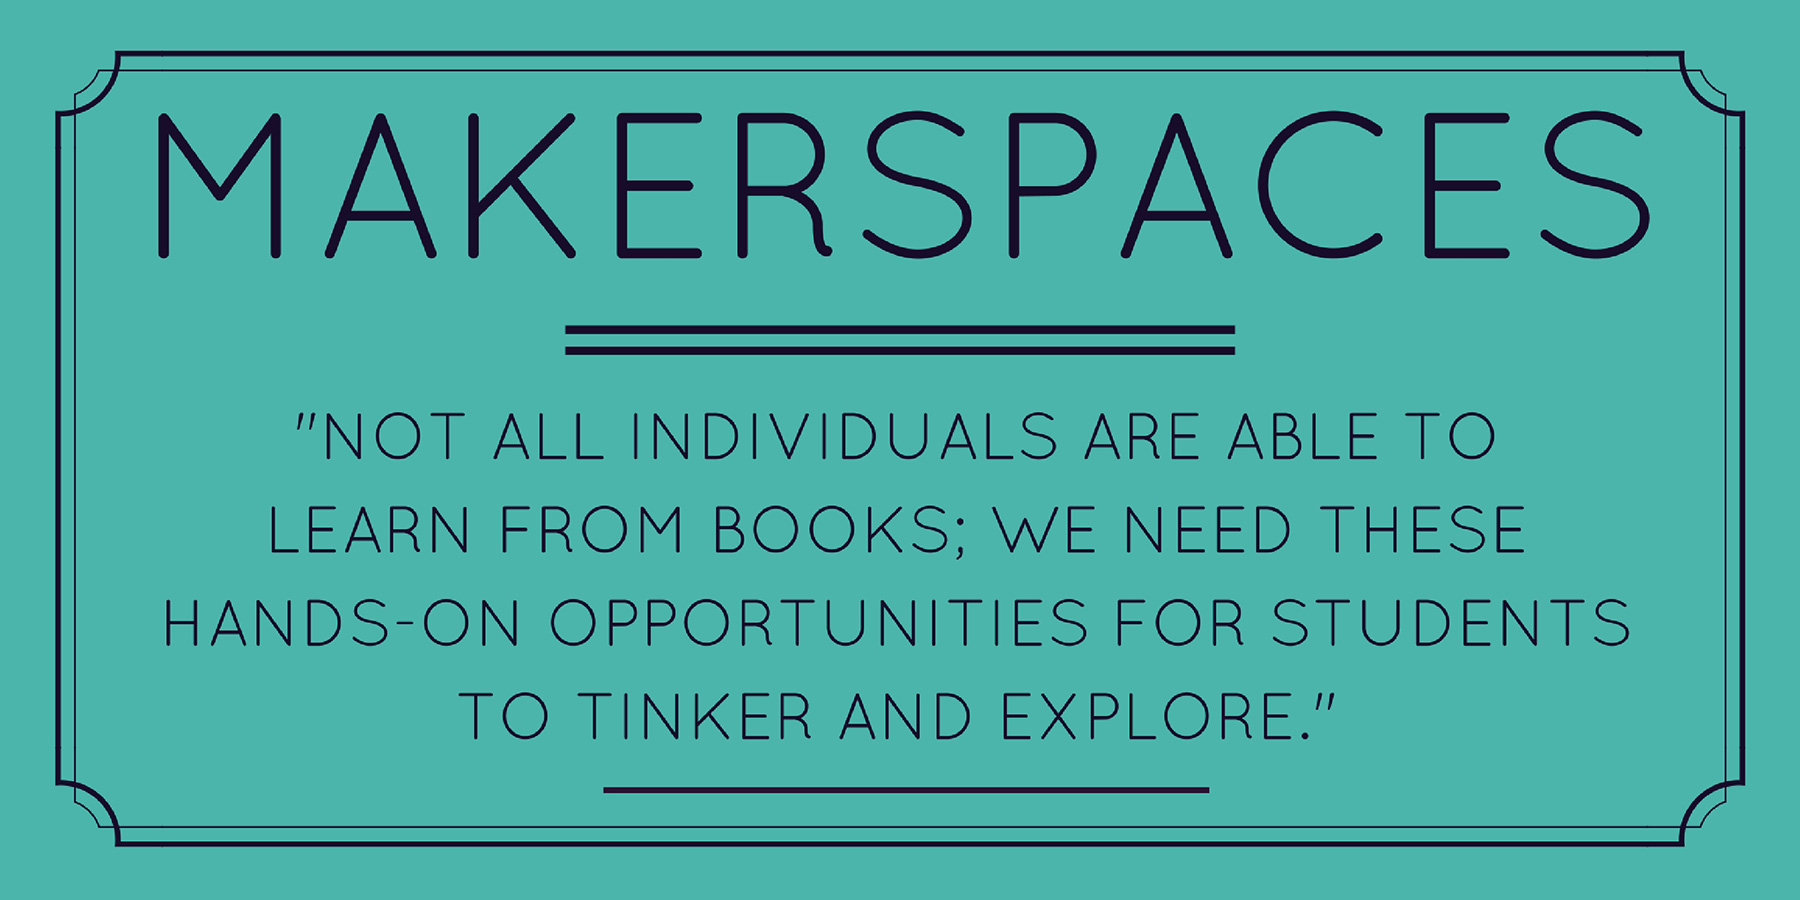 Why Makerspace